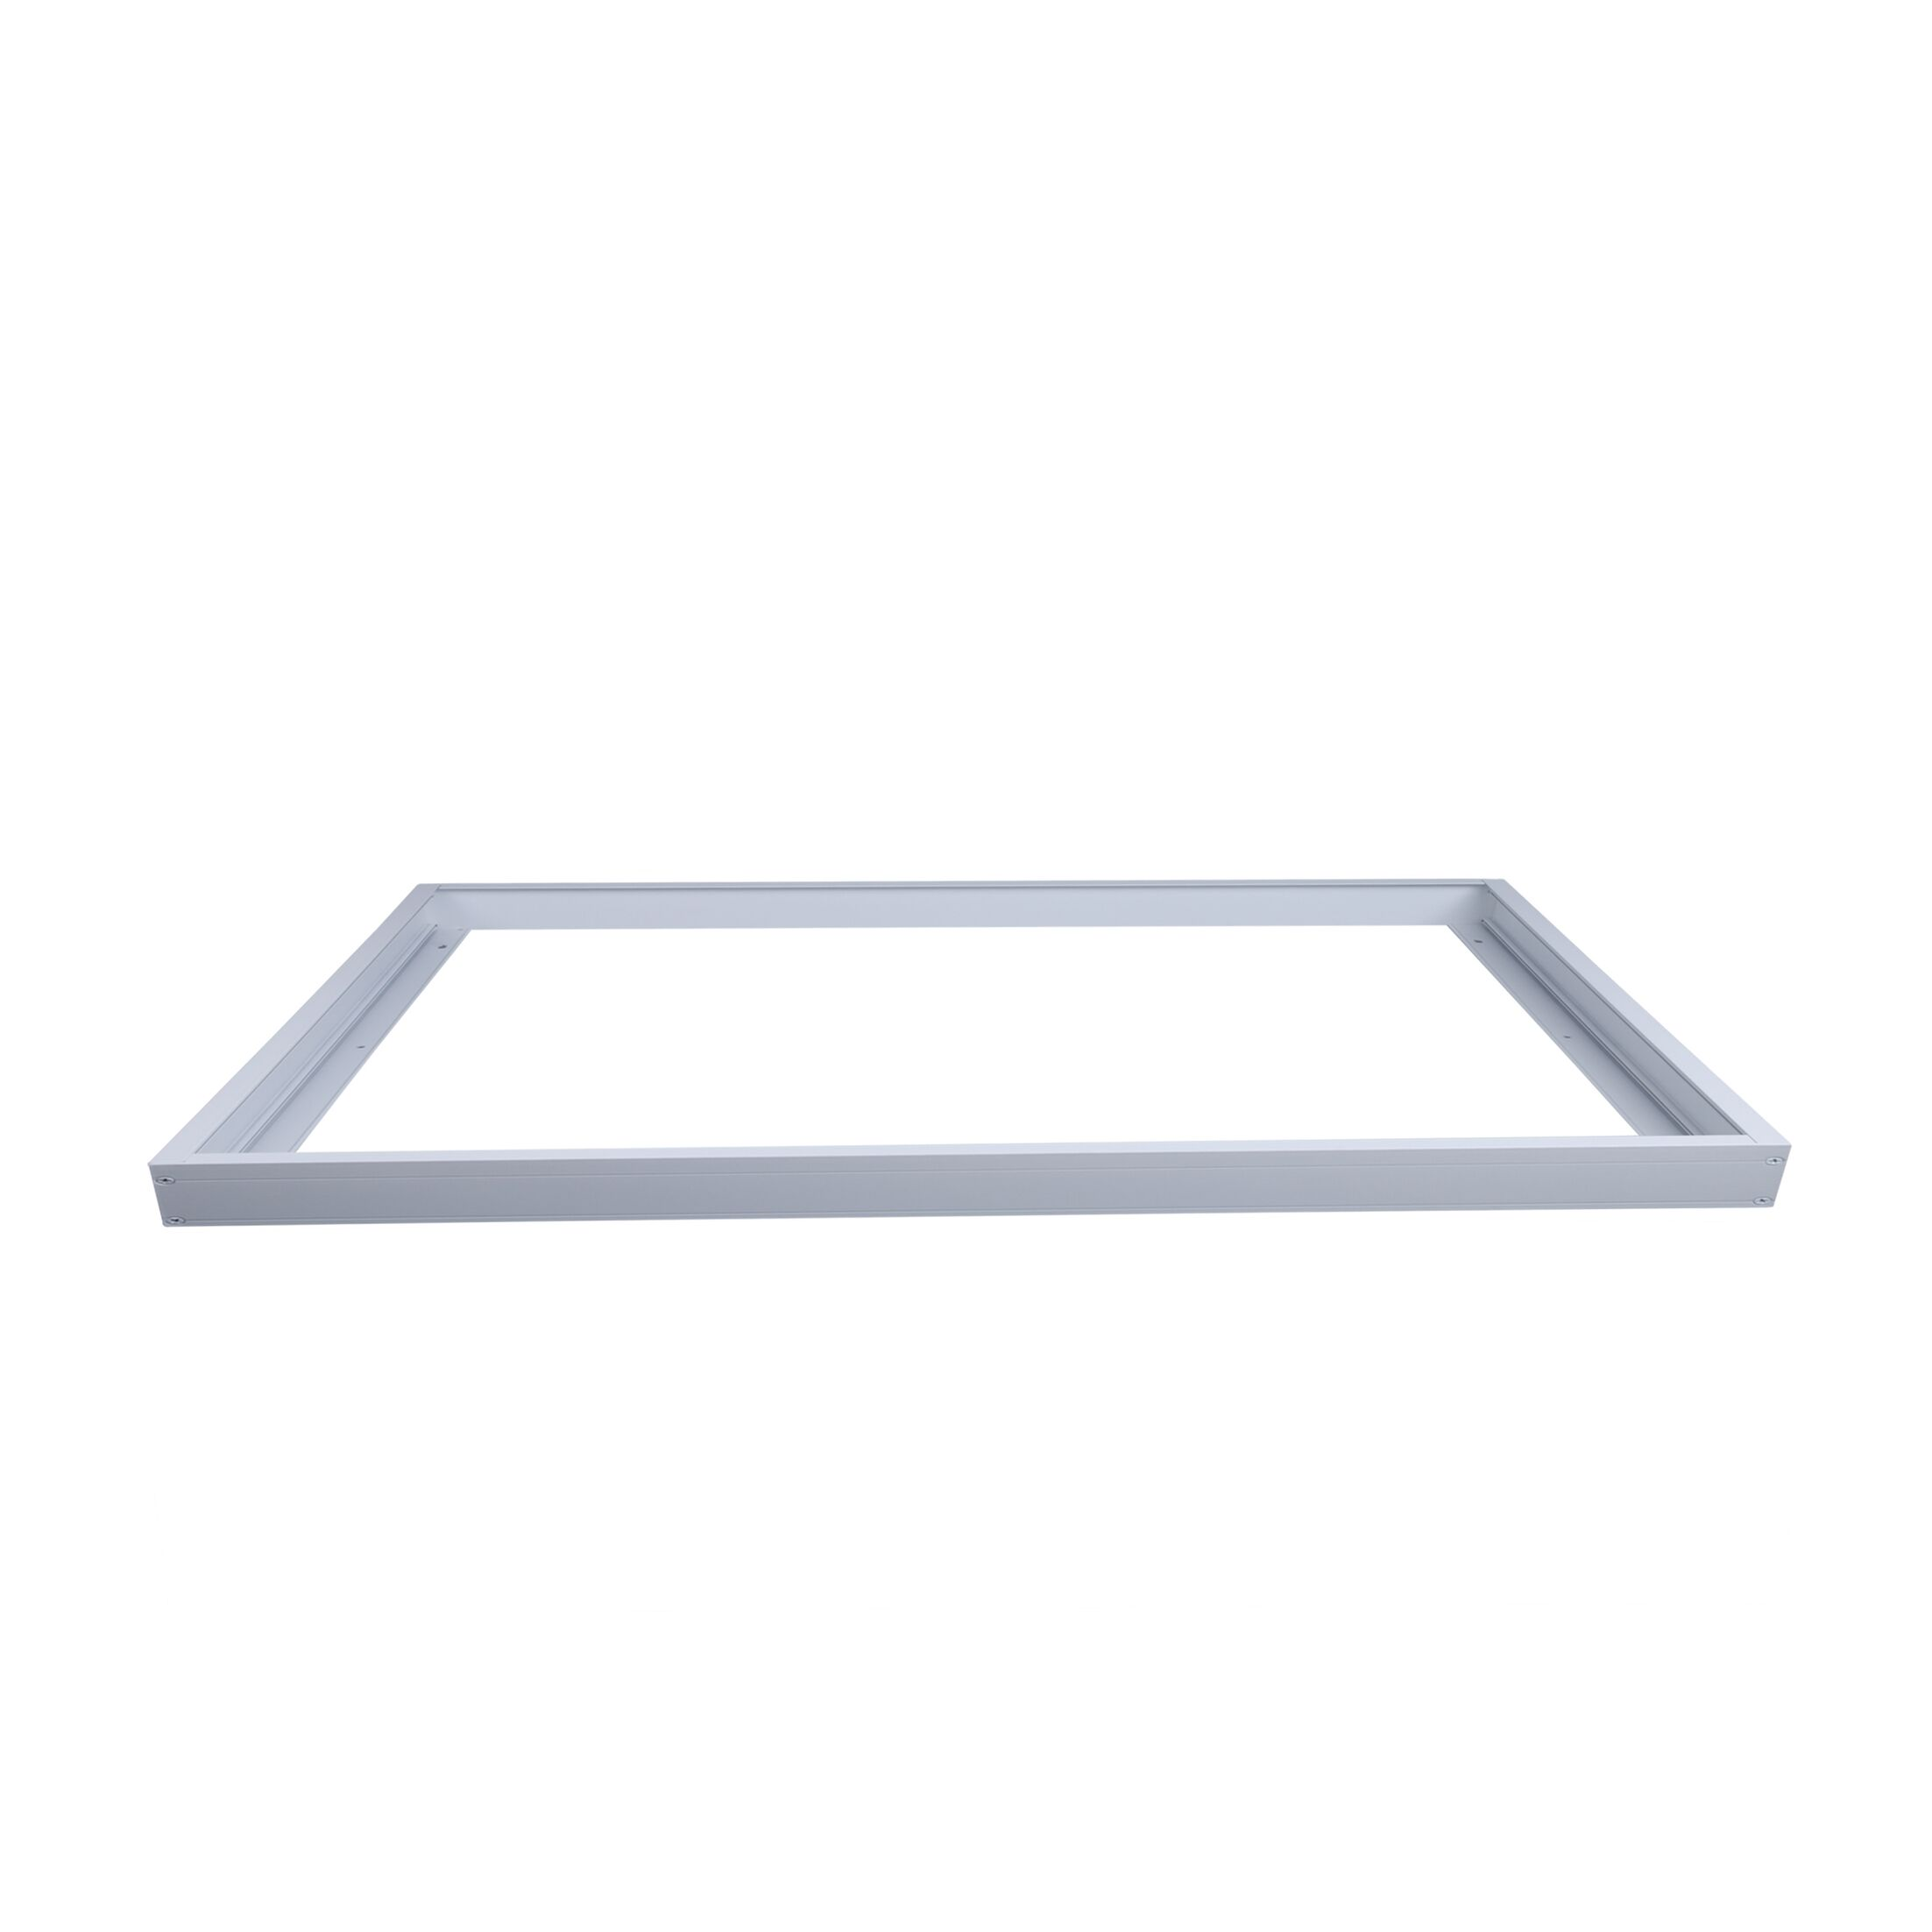 New Construction Panel Kit Size: 0.75